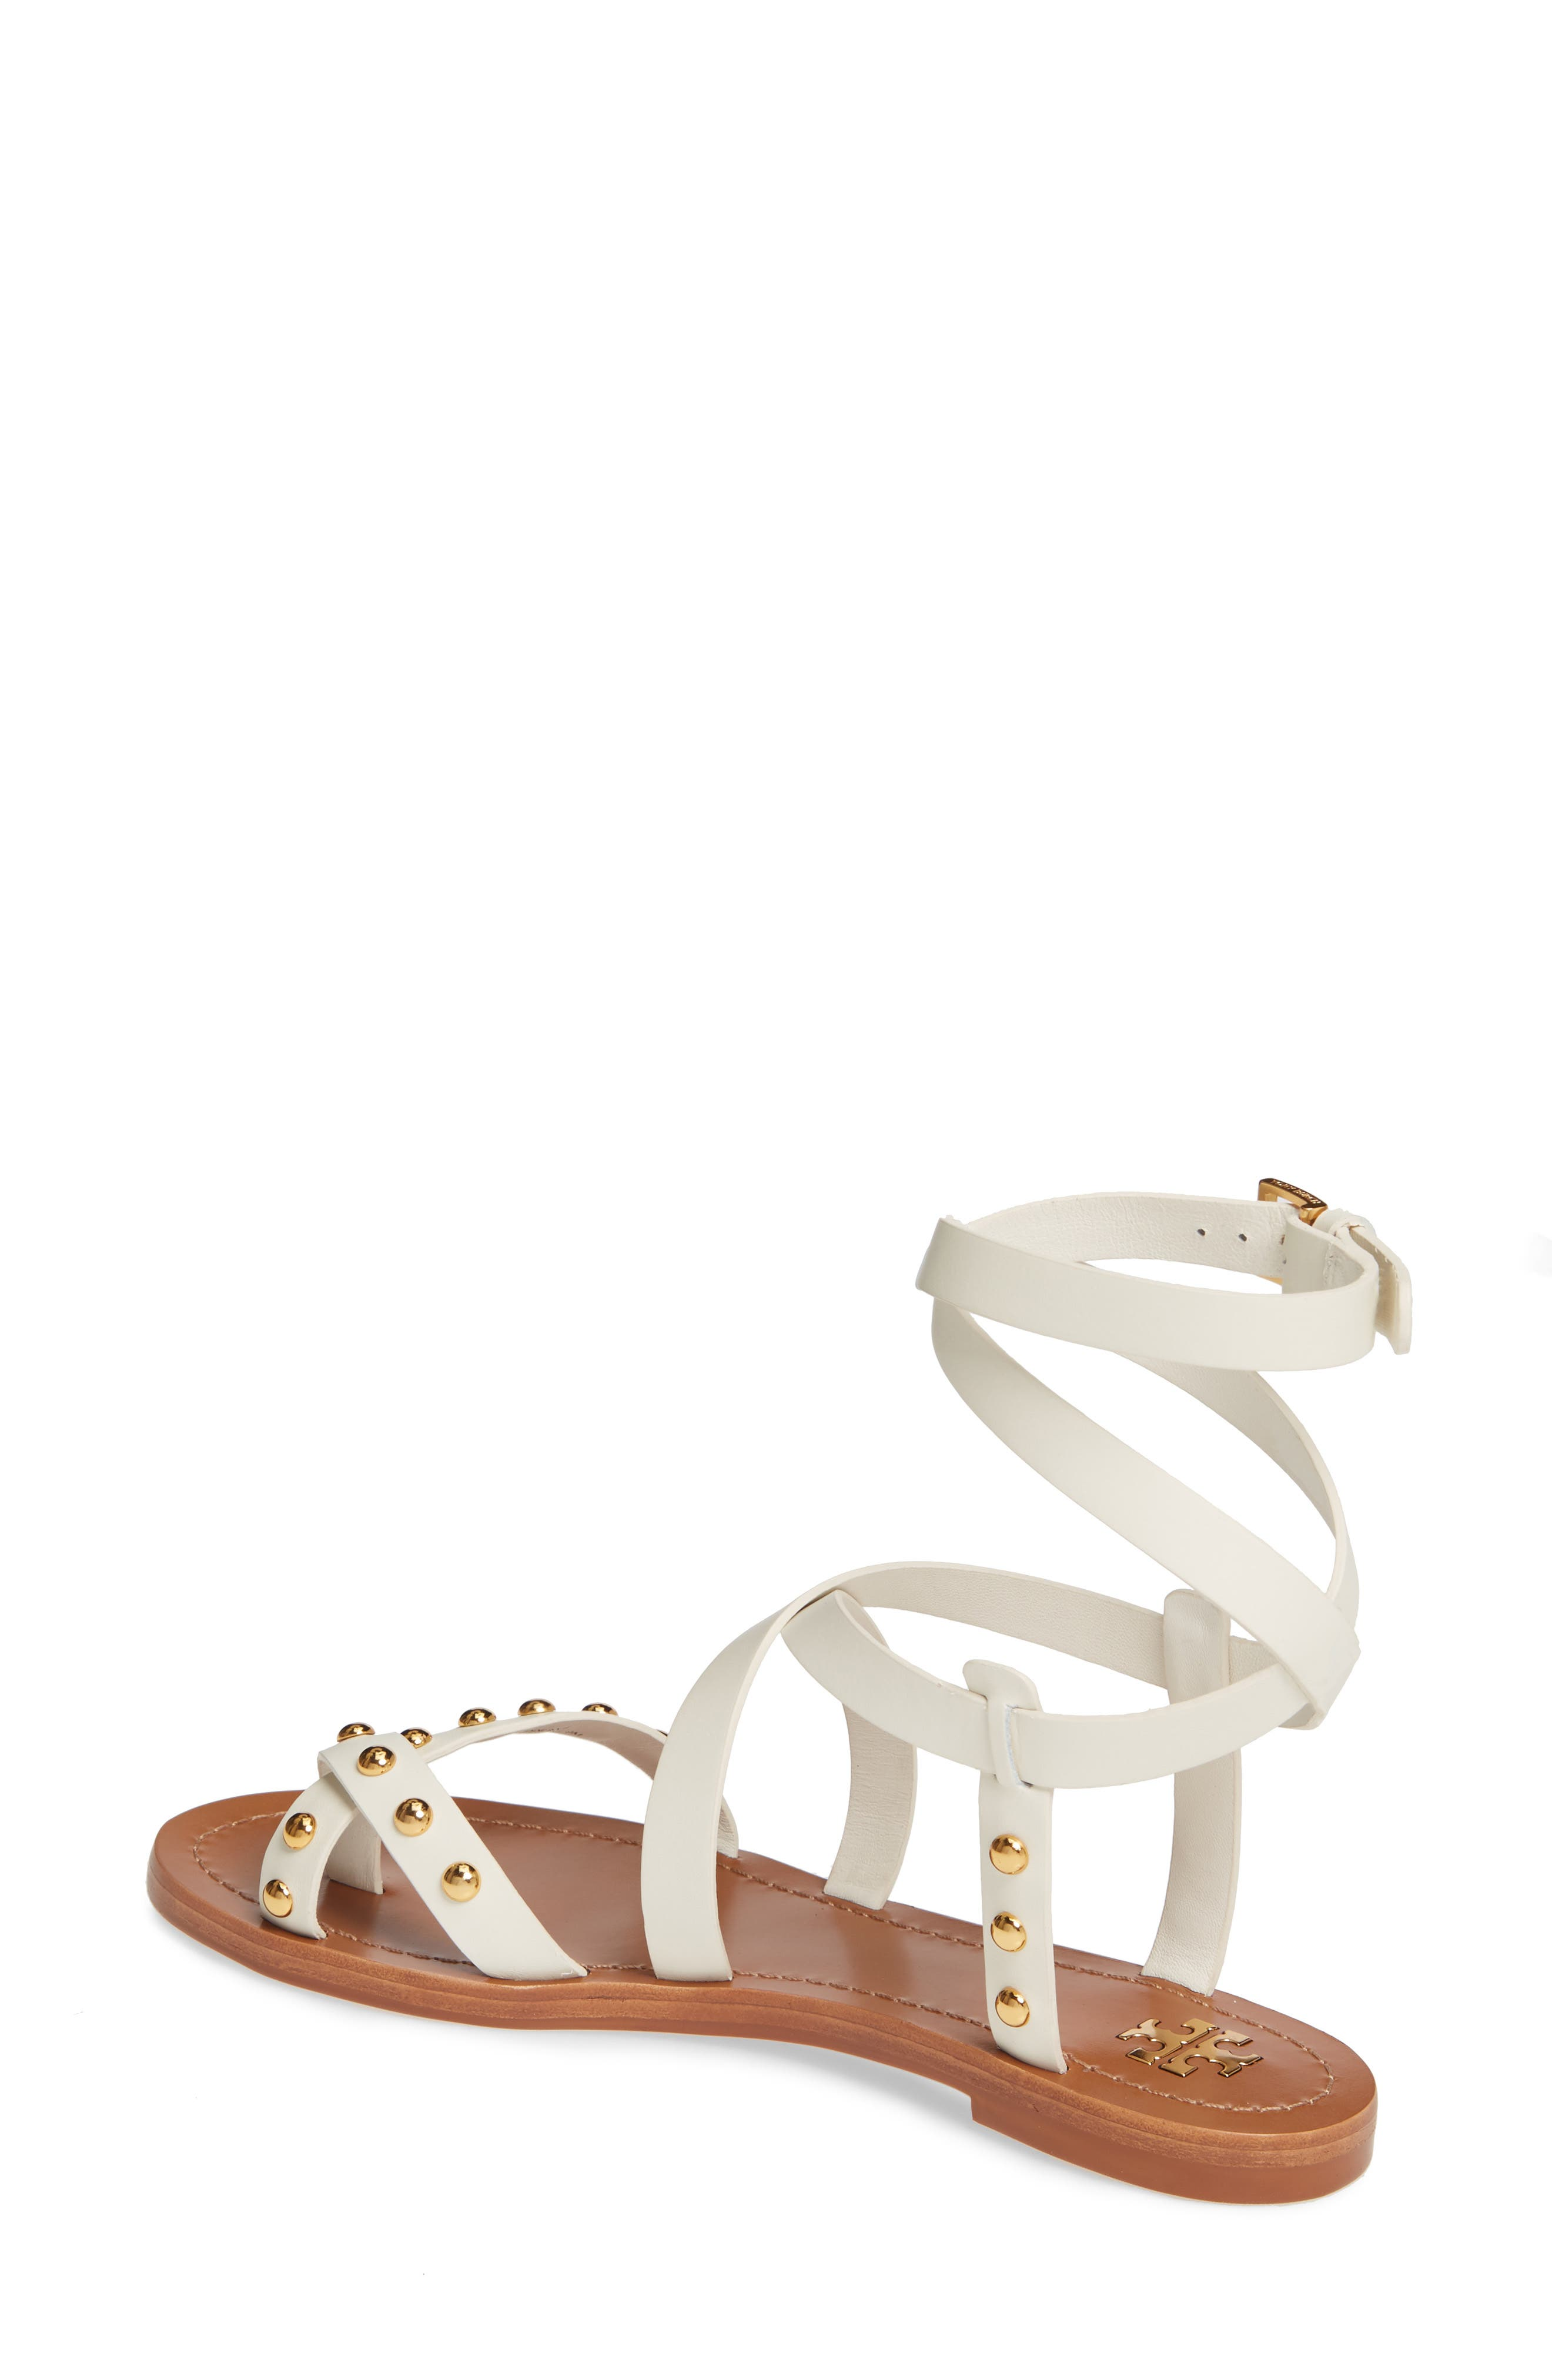 TORY BURCH, Ravello Studded Cage Sandal, Alternate thumbnail 2, color, PERFECT IVORY